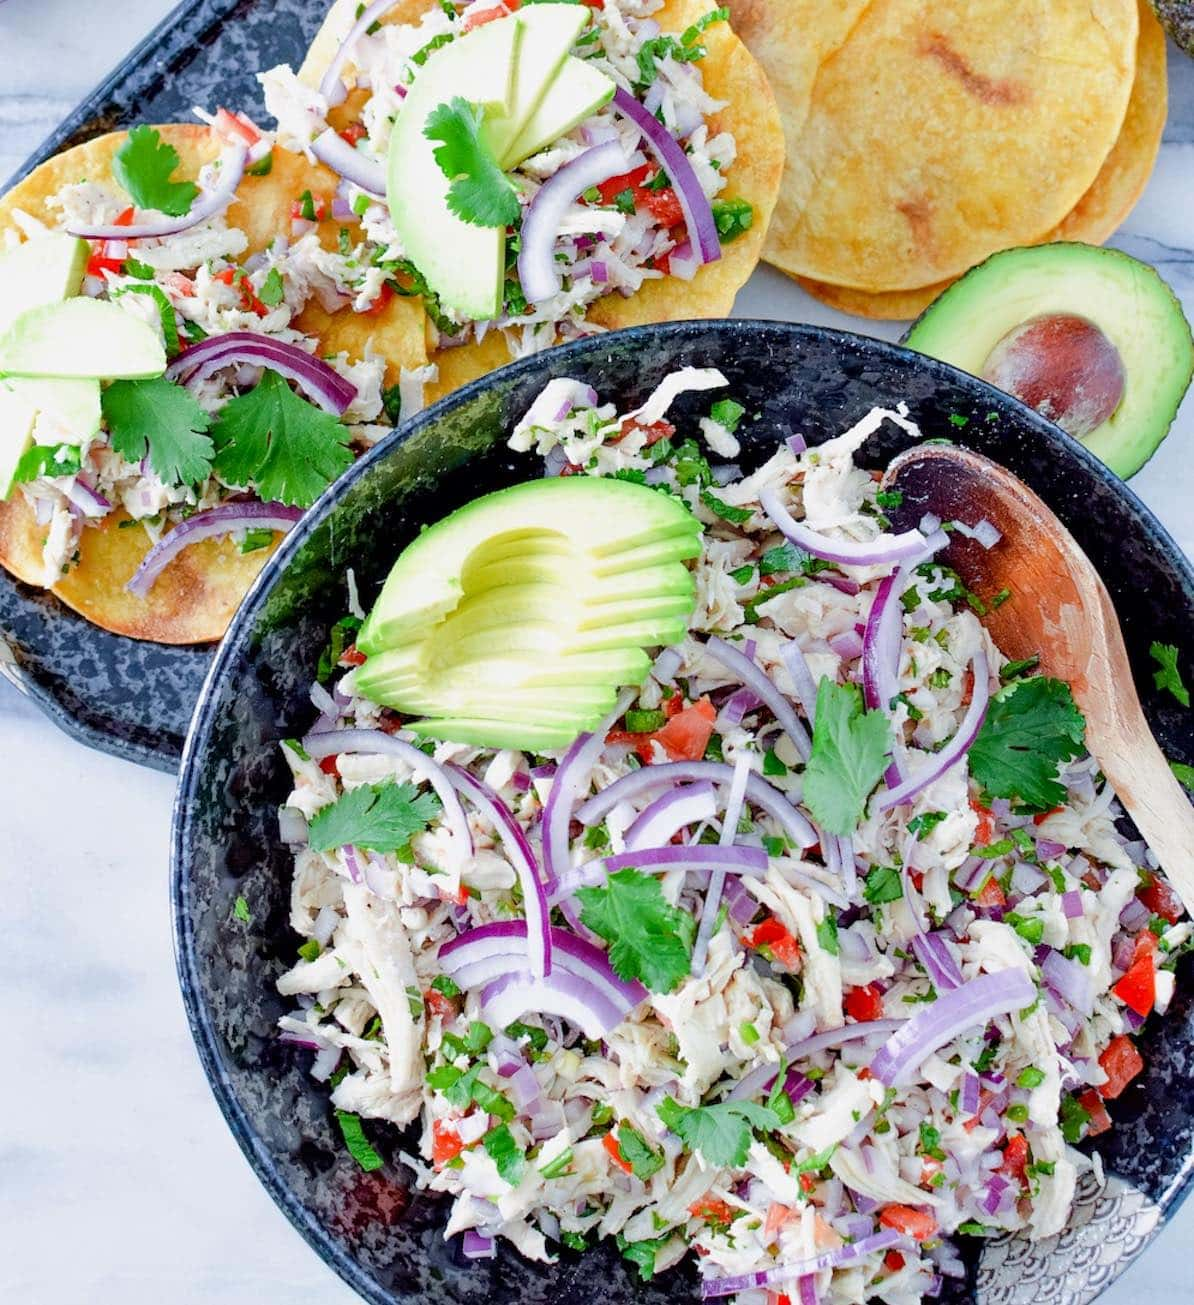 Chicken salpicon de pollo in a bowl and on tostadas.